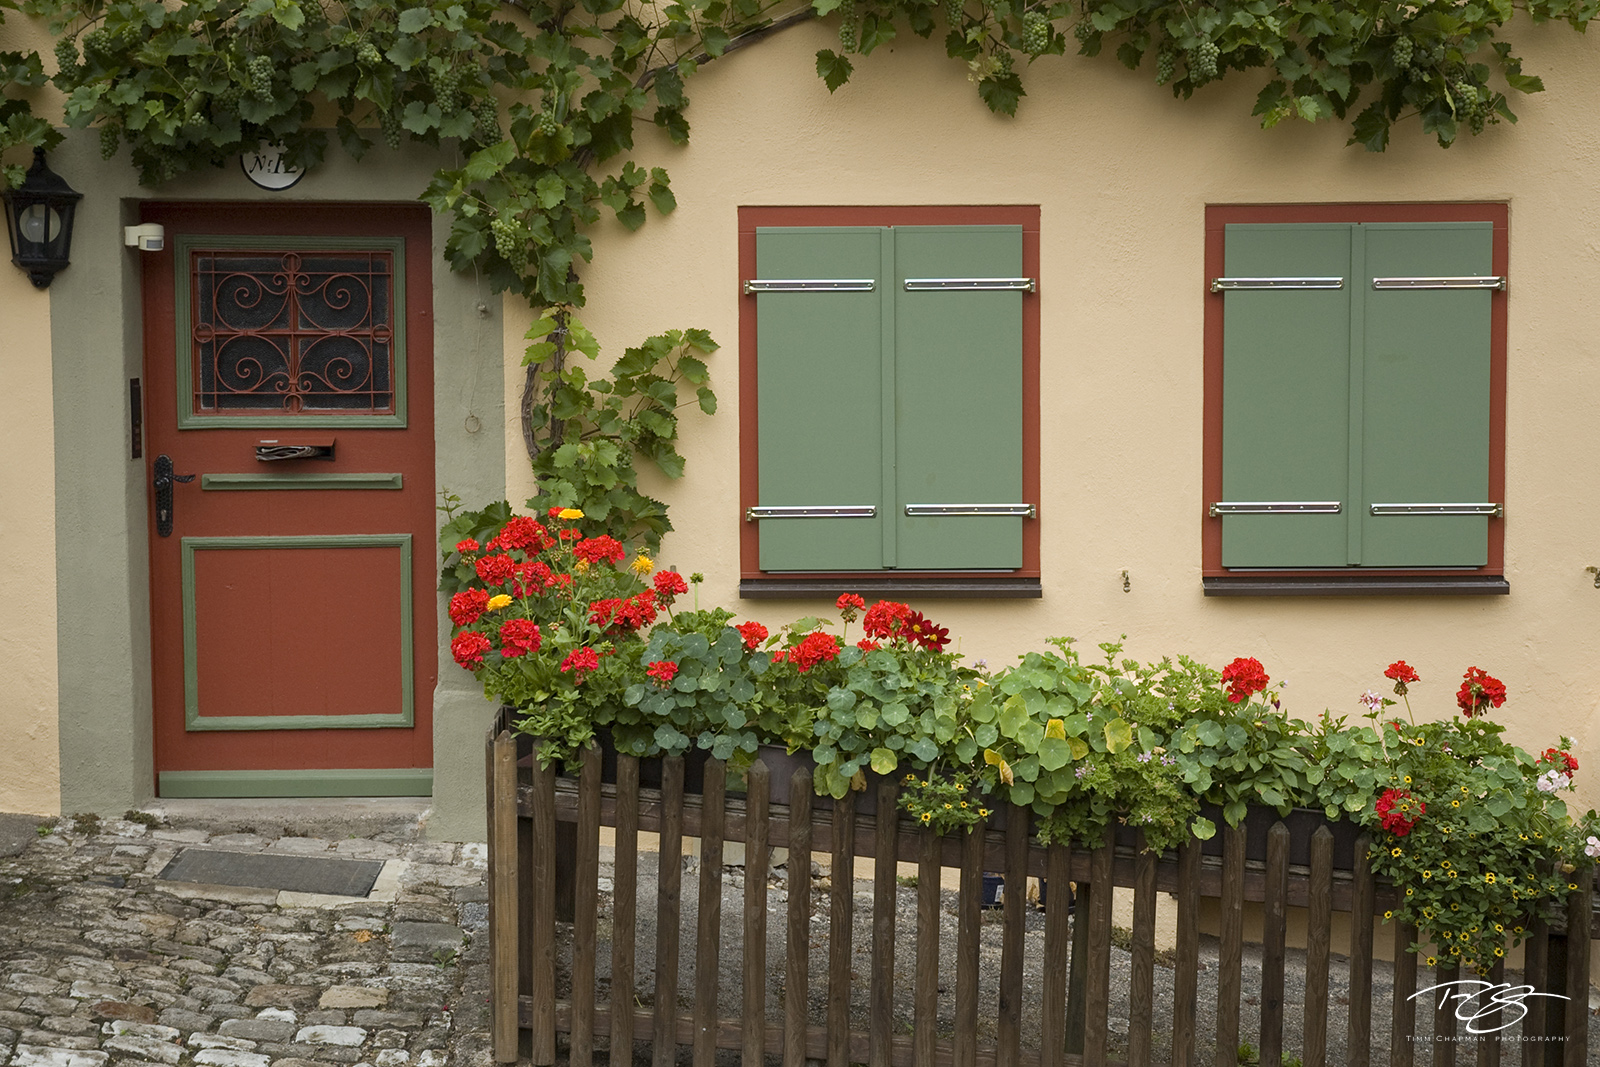 germany, Häuschen, Cottage, medieval, village, town, bavaria, windows, door, red door, green windows, flowerboxes, flower boxes, beige walls, romantische strasse, romantic road, architecture